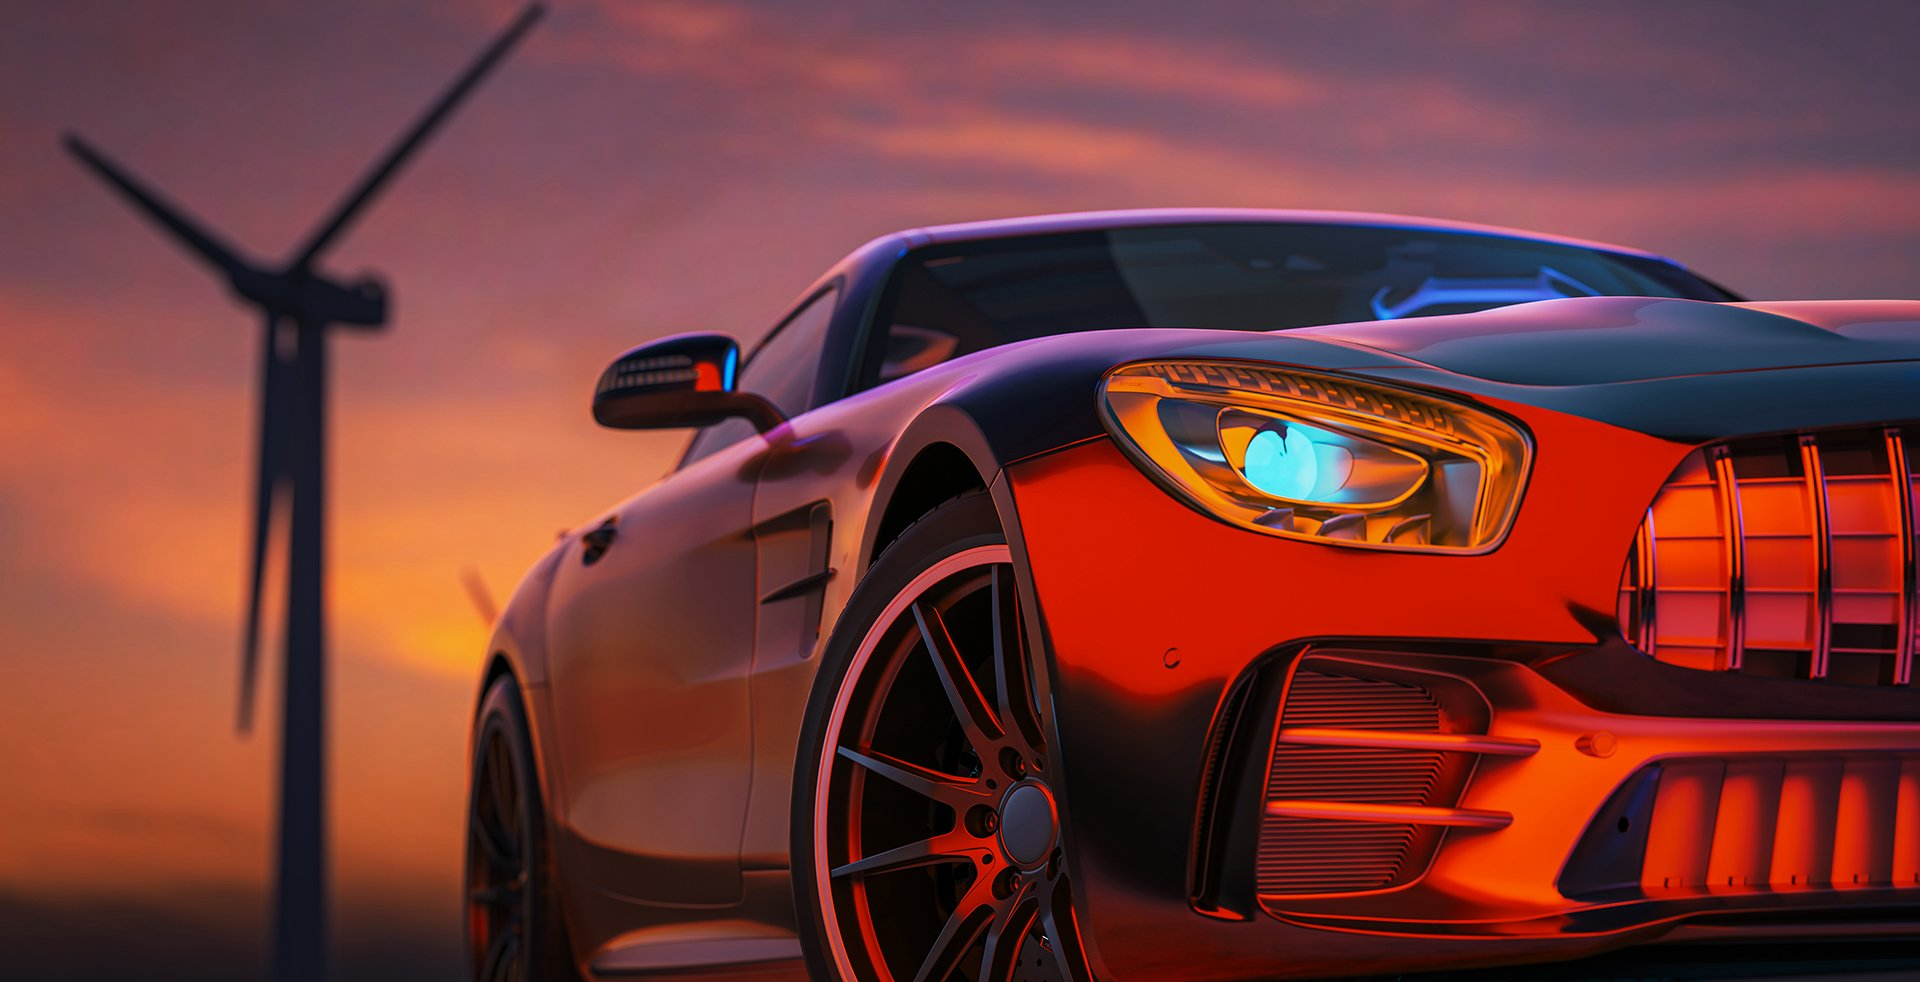 image-front-sports-car-scene-as-sun-going-down-with-wind-turbines-back-3d-render-illustration-2